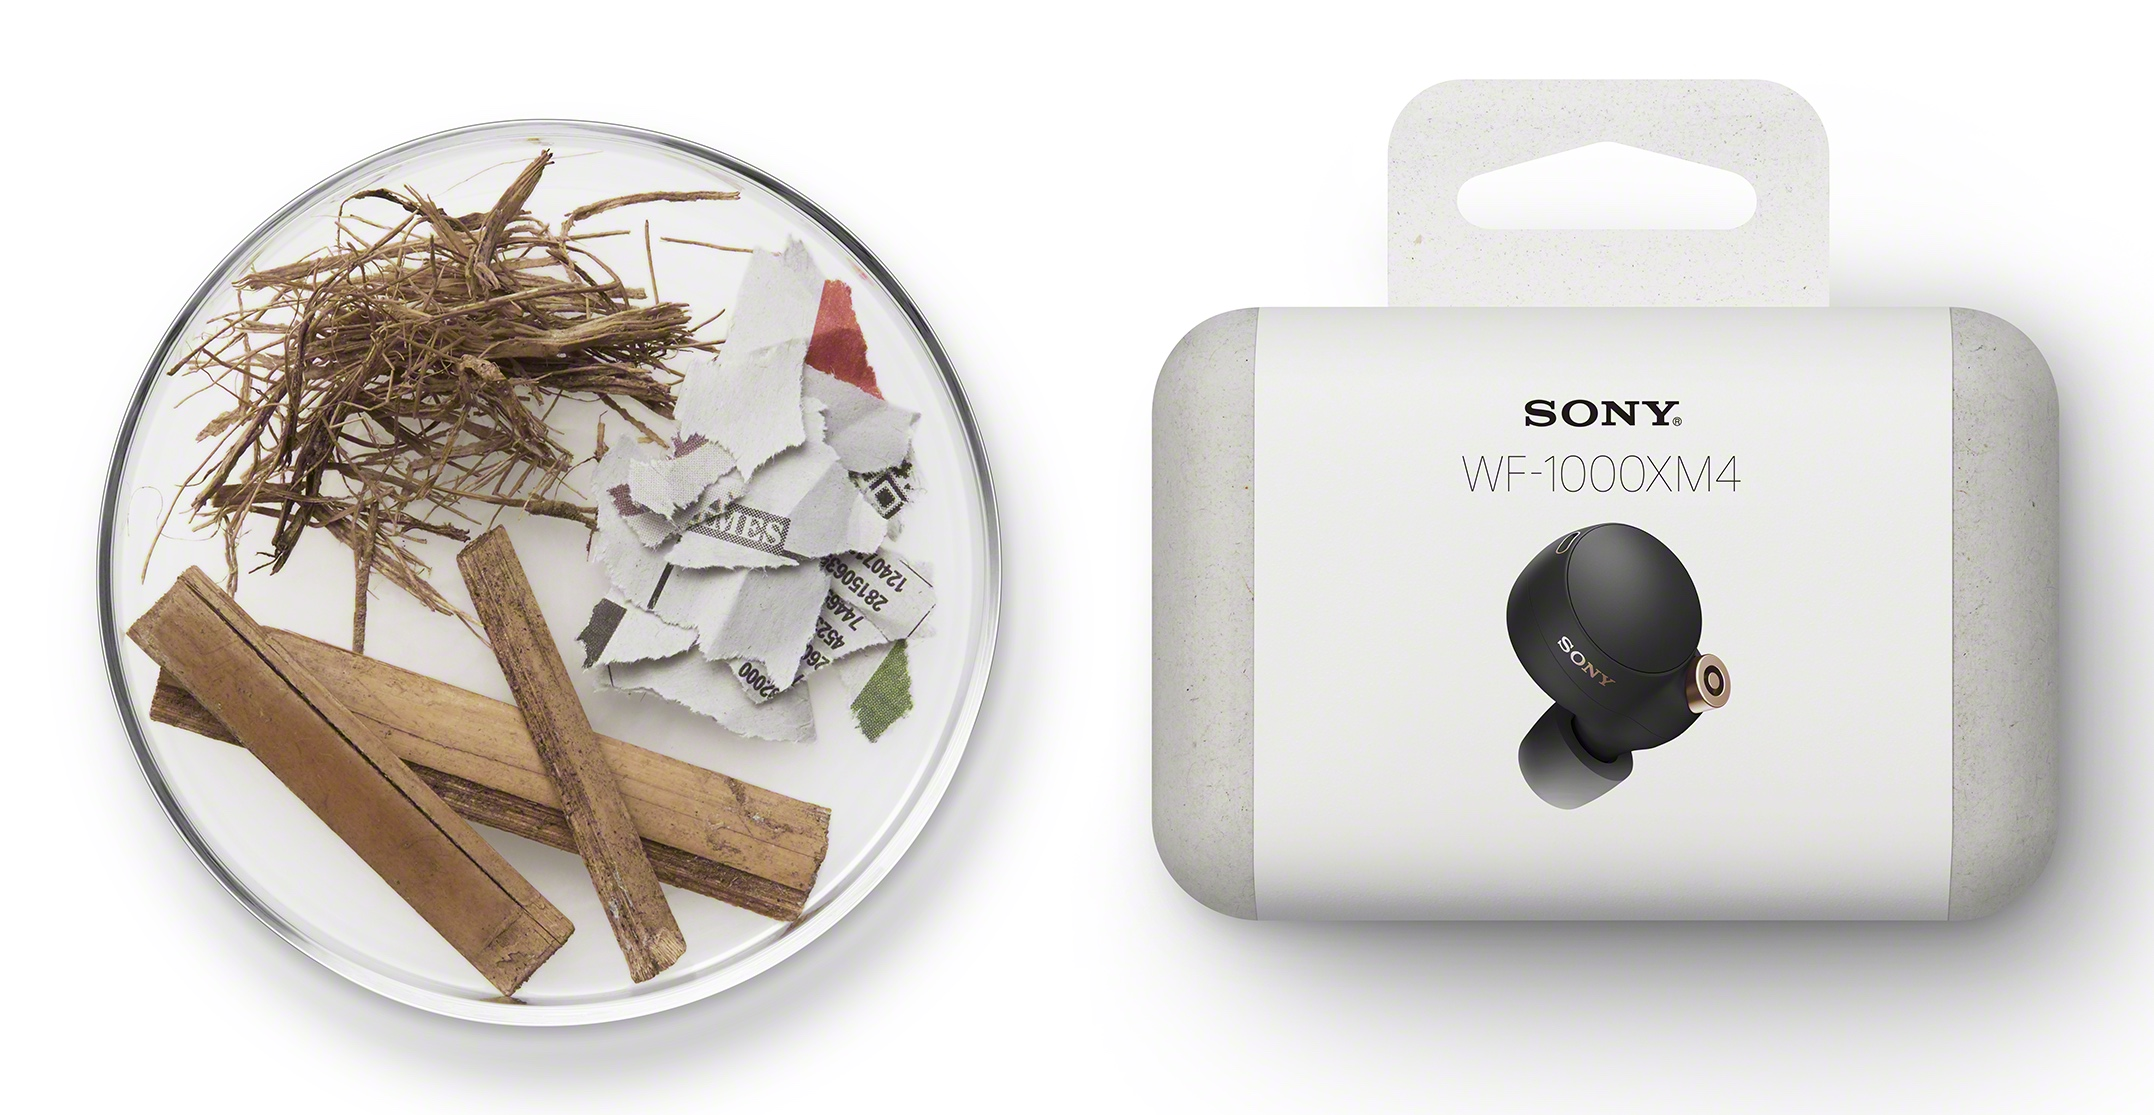 The packaging is more environmentally friendly. (Image source: Sony)